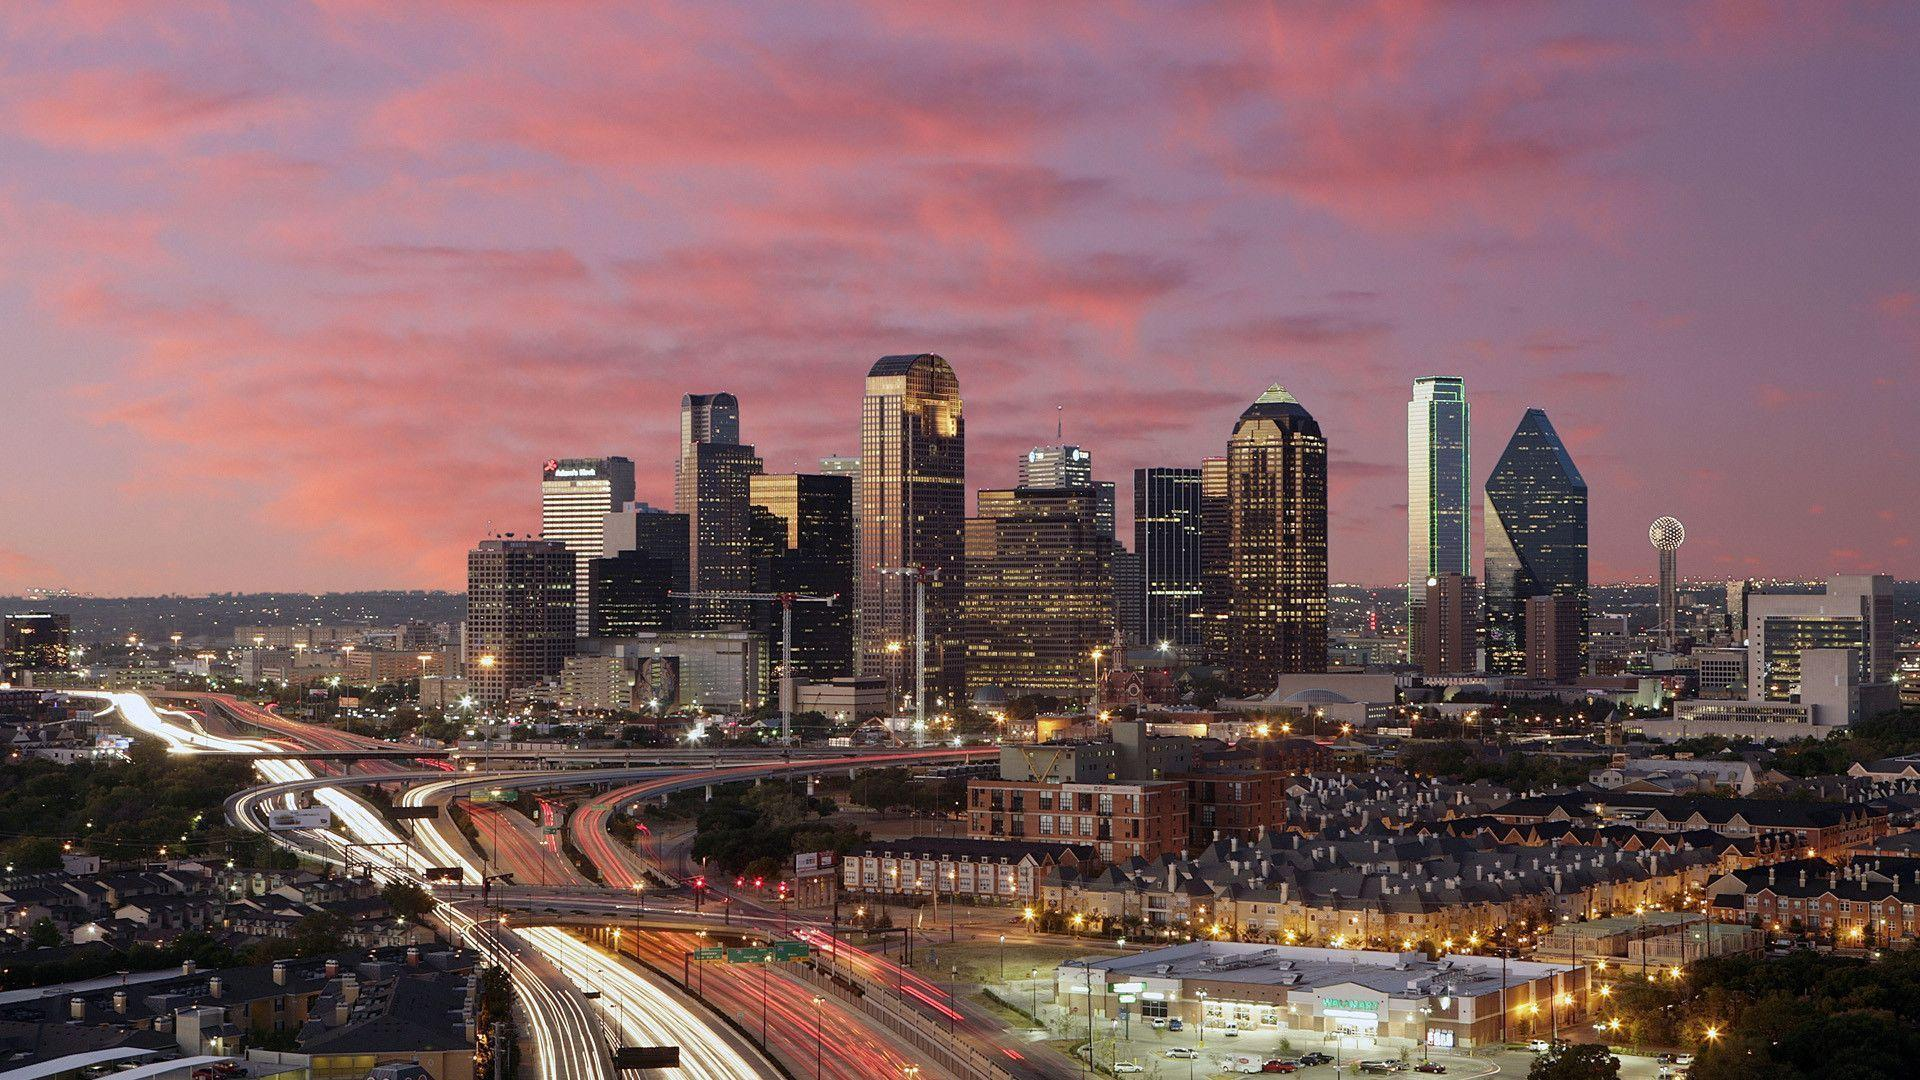 downtown dallas hd wallpapers - photo #22